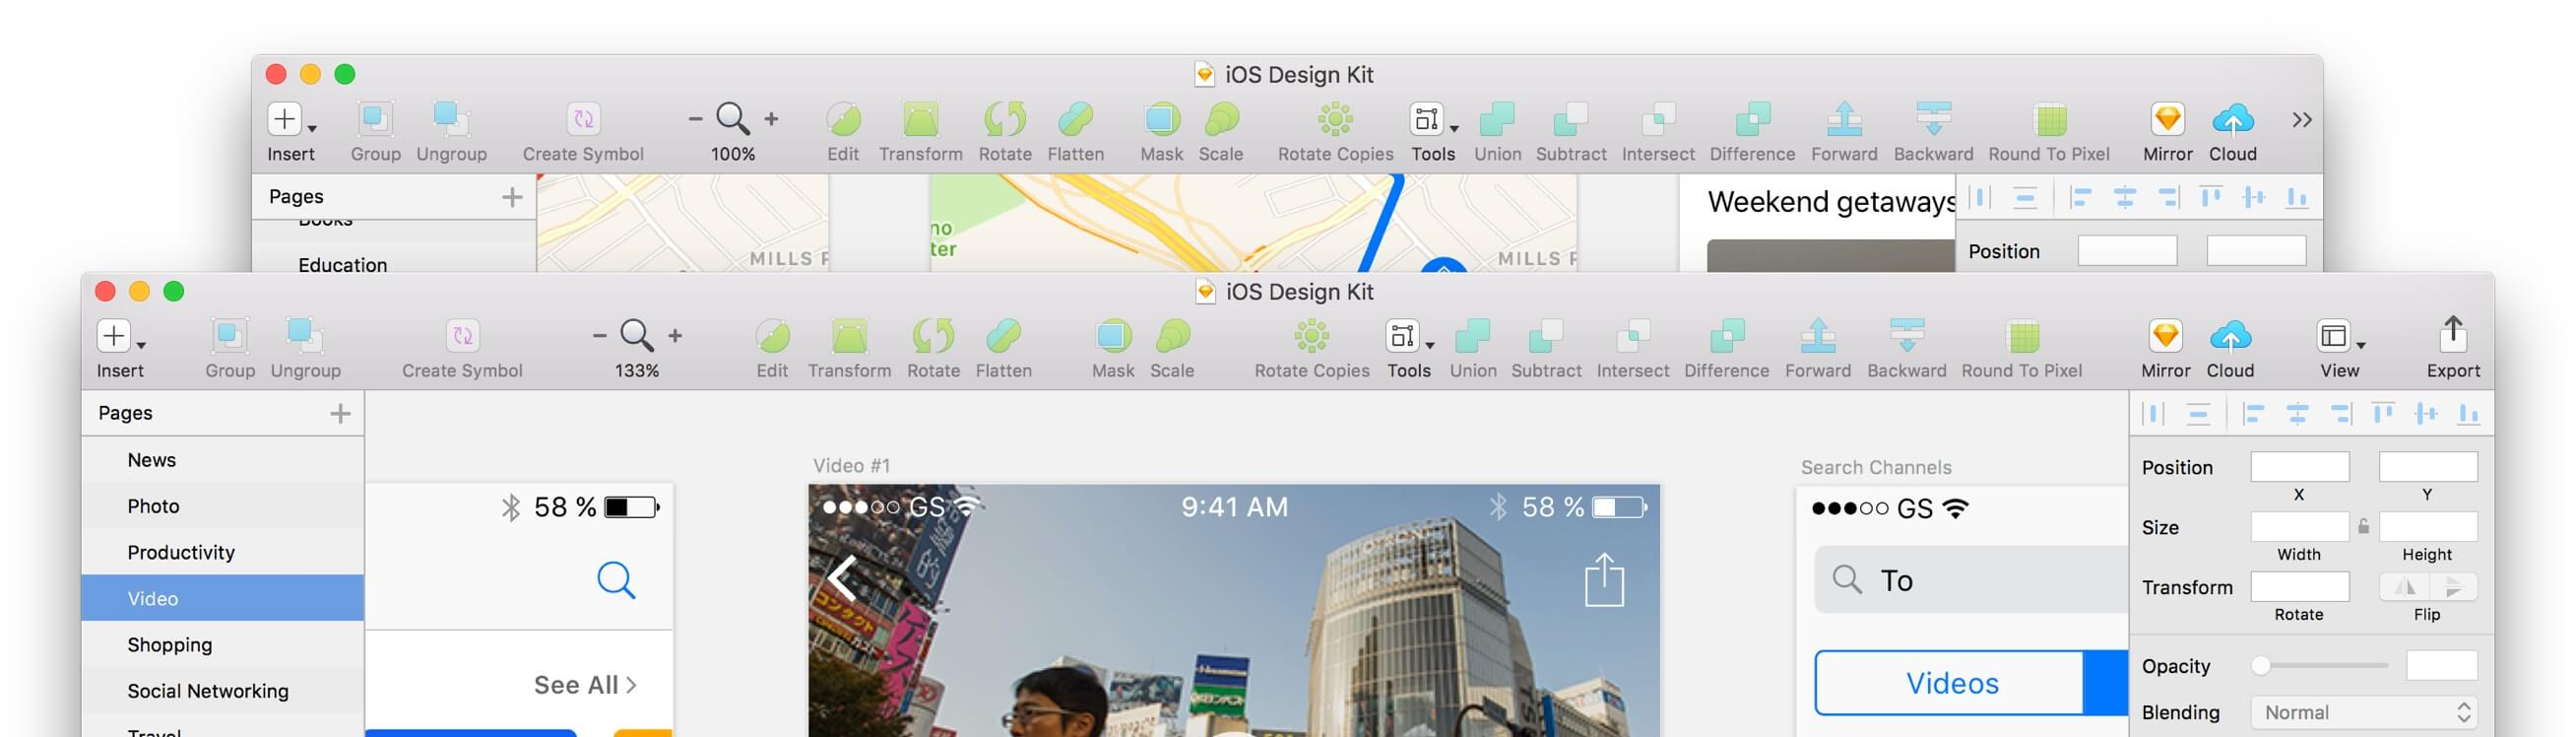 iOS Design Kit – Library of iOS app templates and UI elements